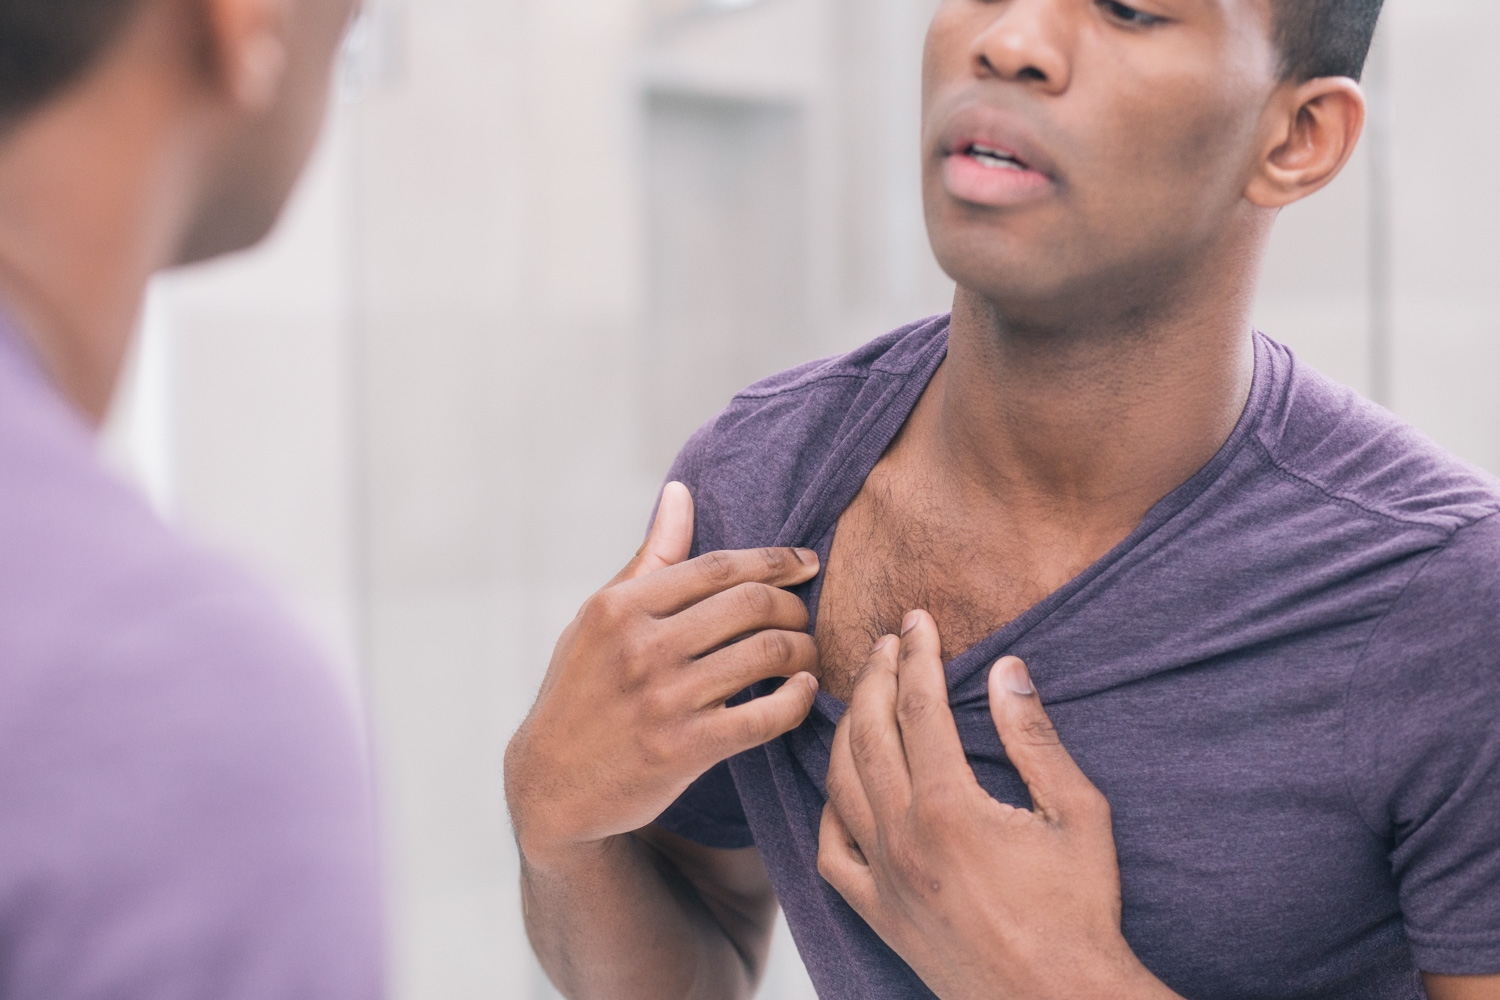 Man looks at his chest hair in mirror